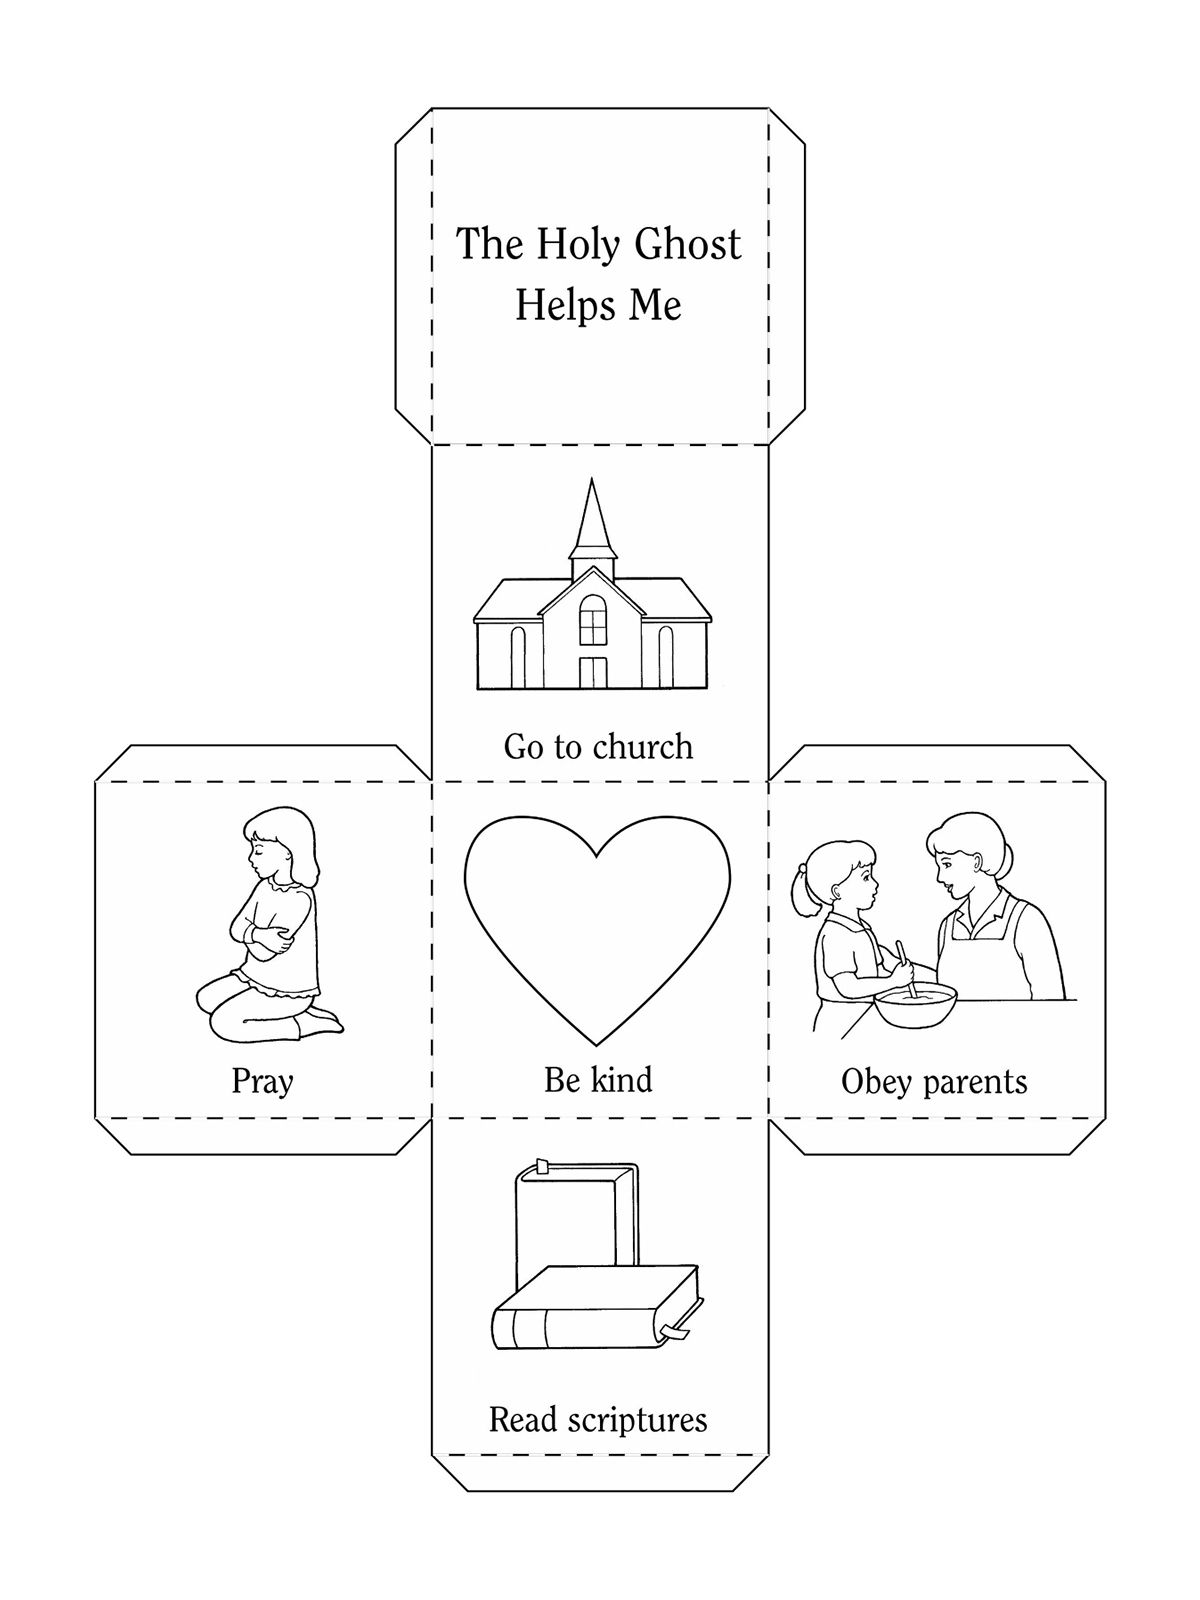 An illustration and activity from lesson 6, page 31 in the